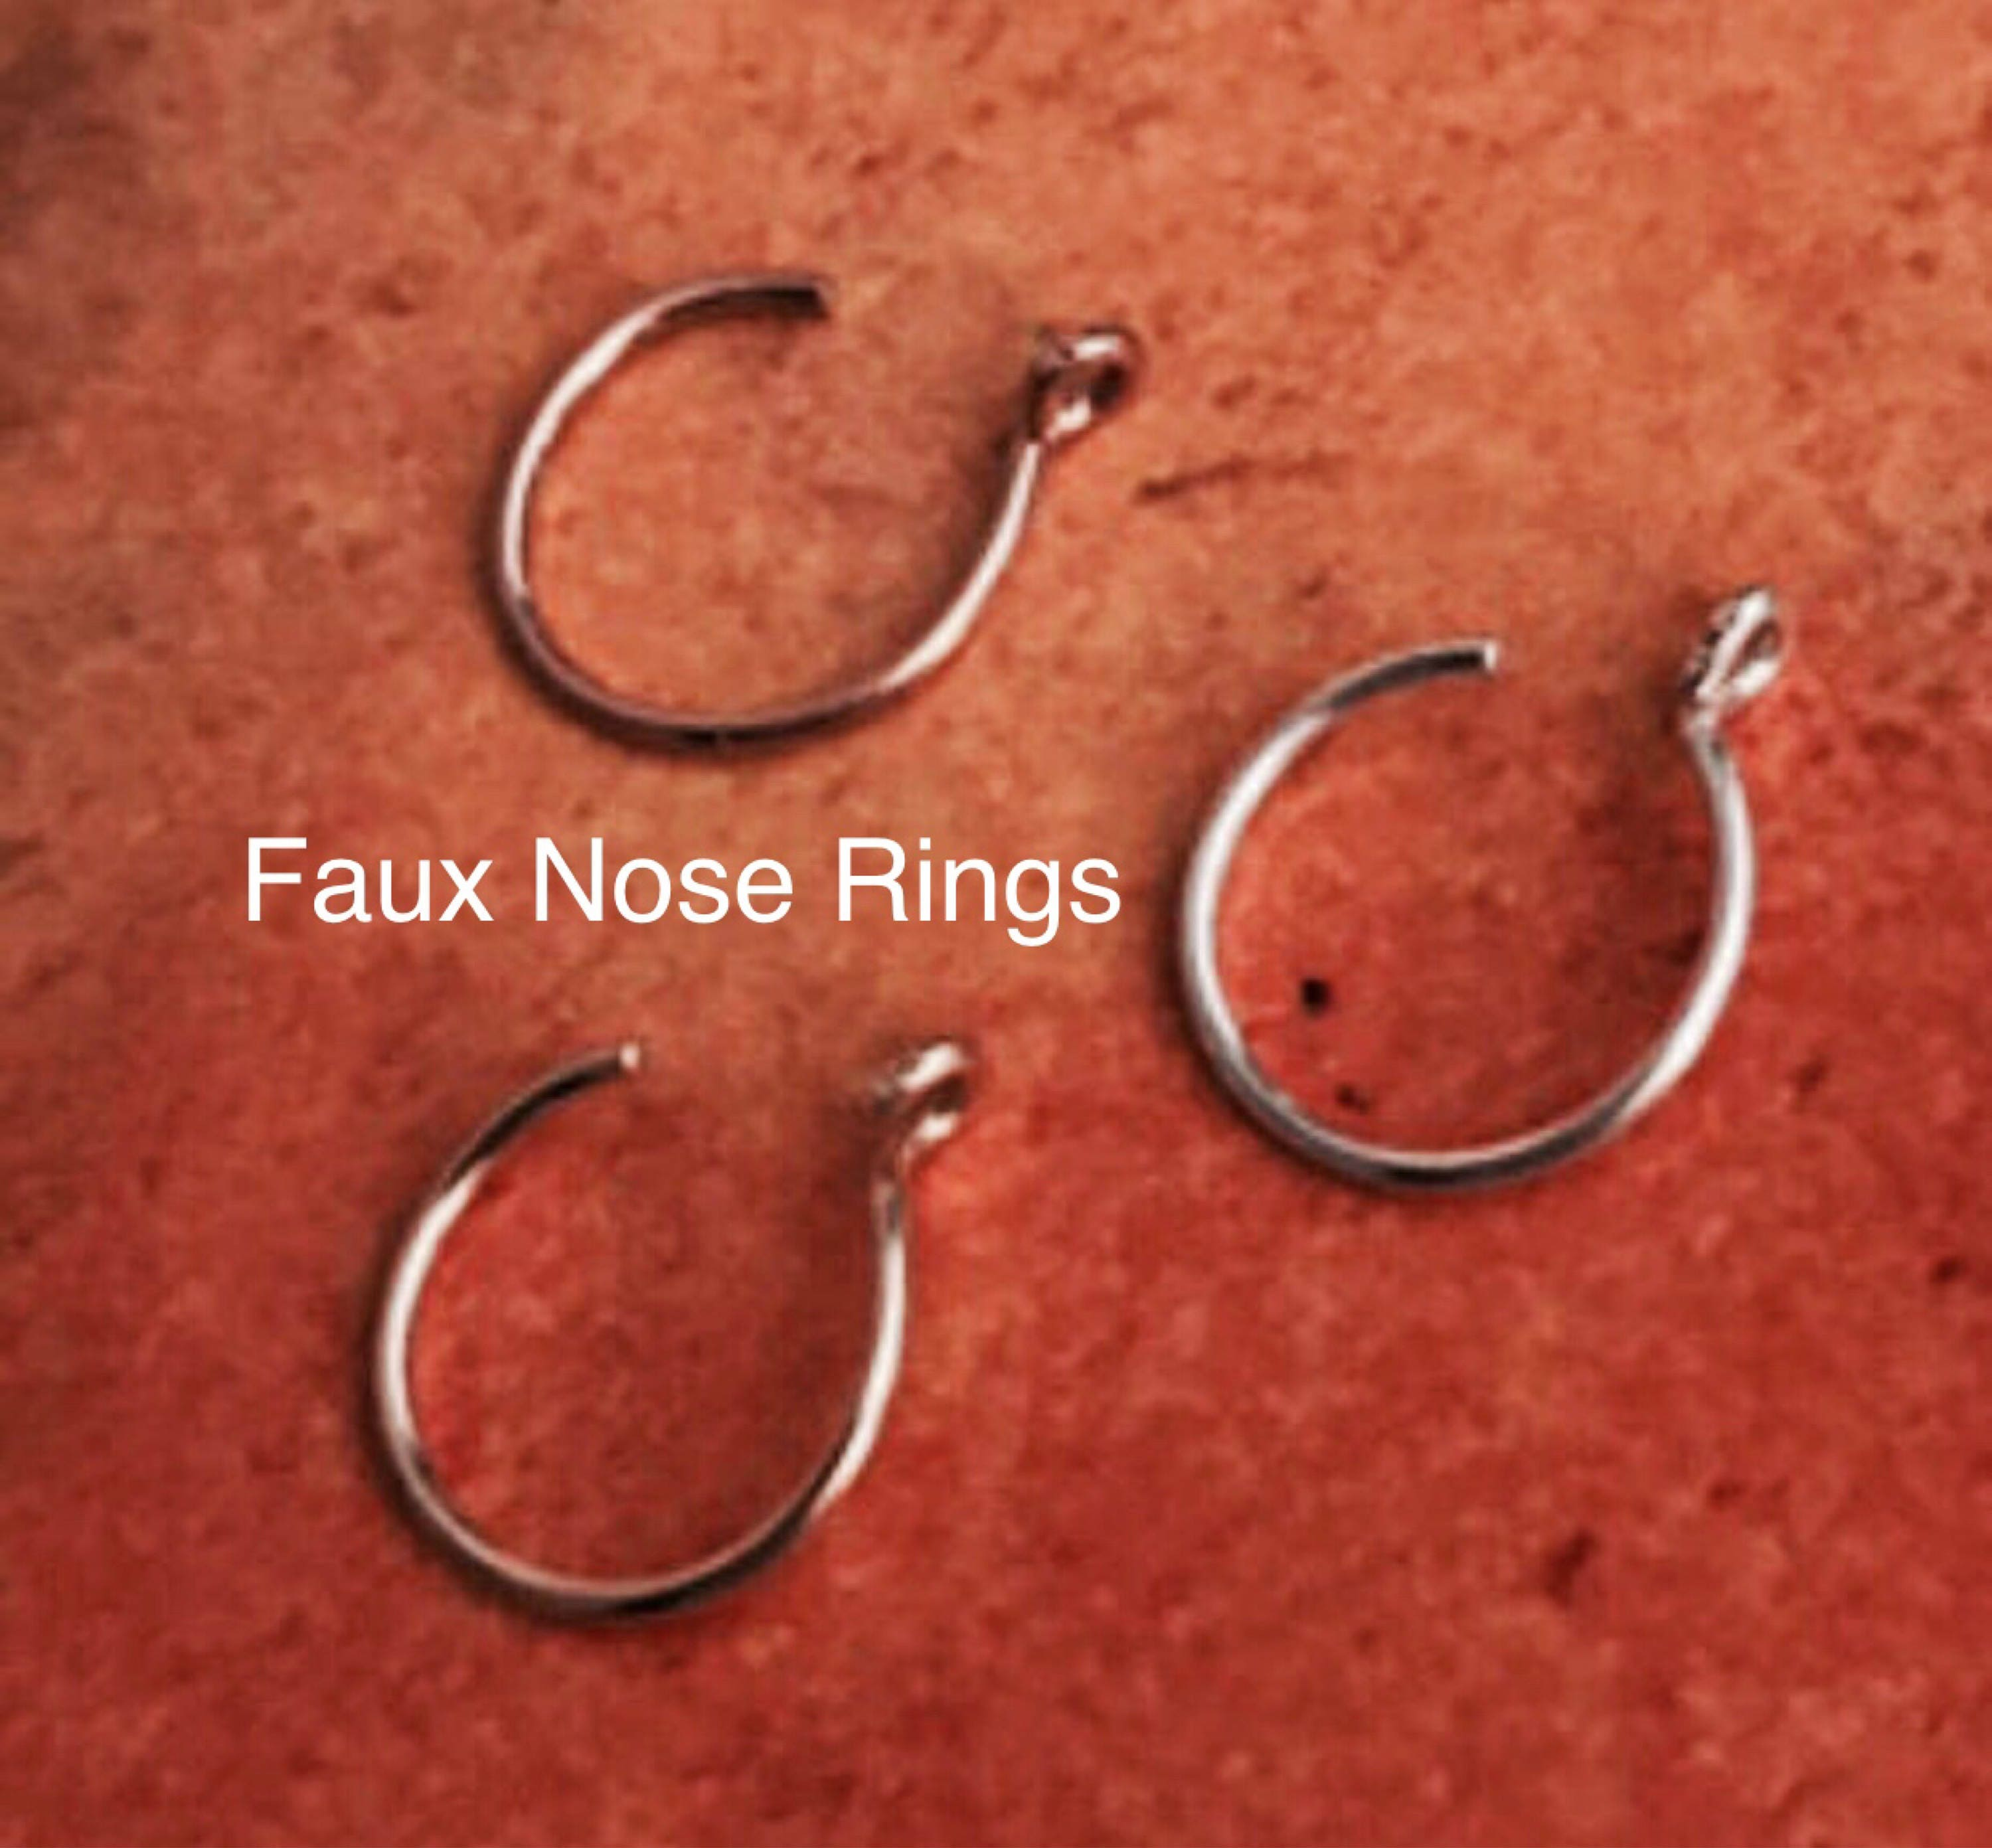 Faux Nose Ring Fake Nose Ring Personalized Place Gift for Man Custom